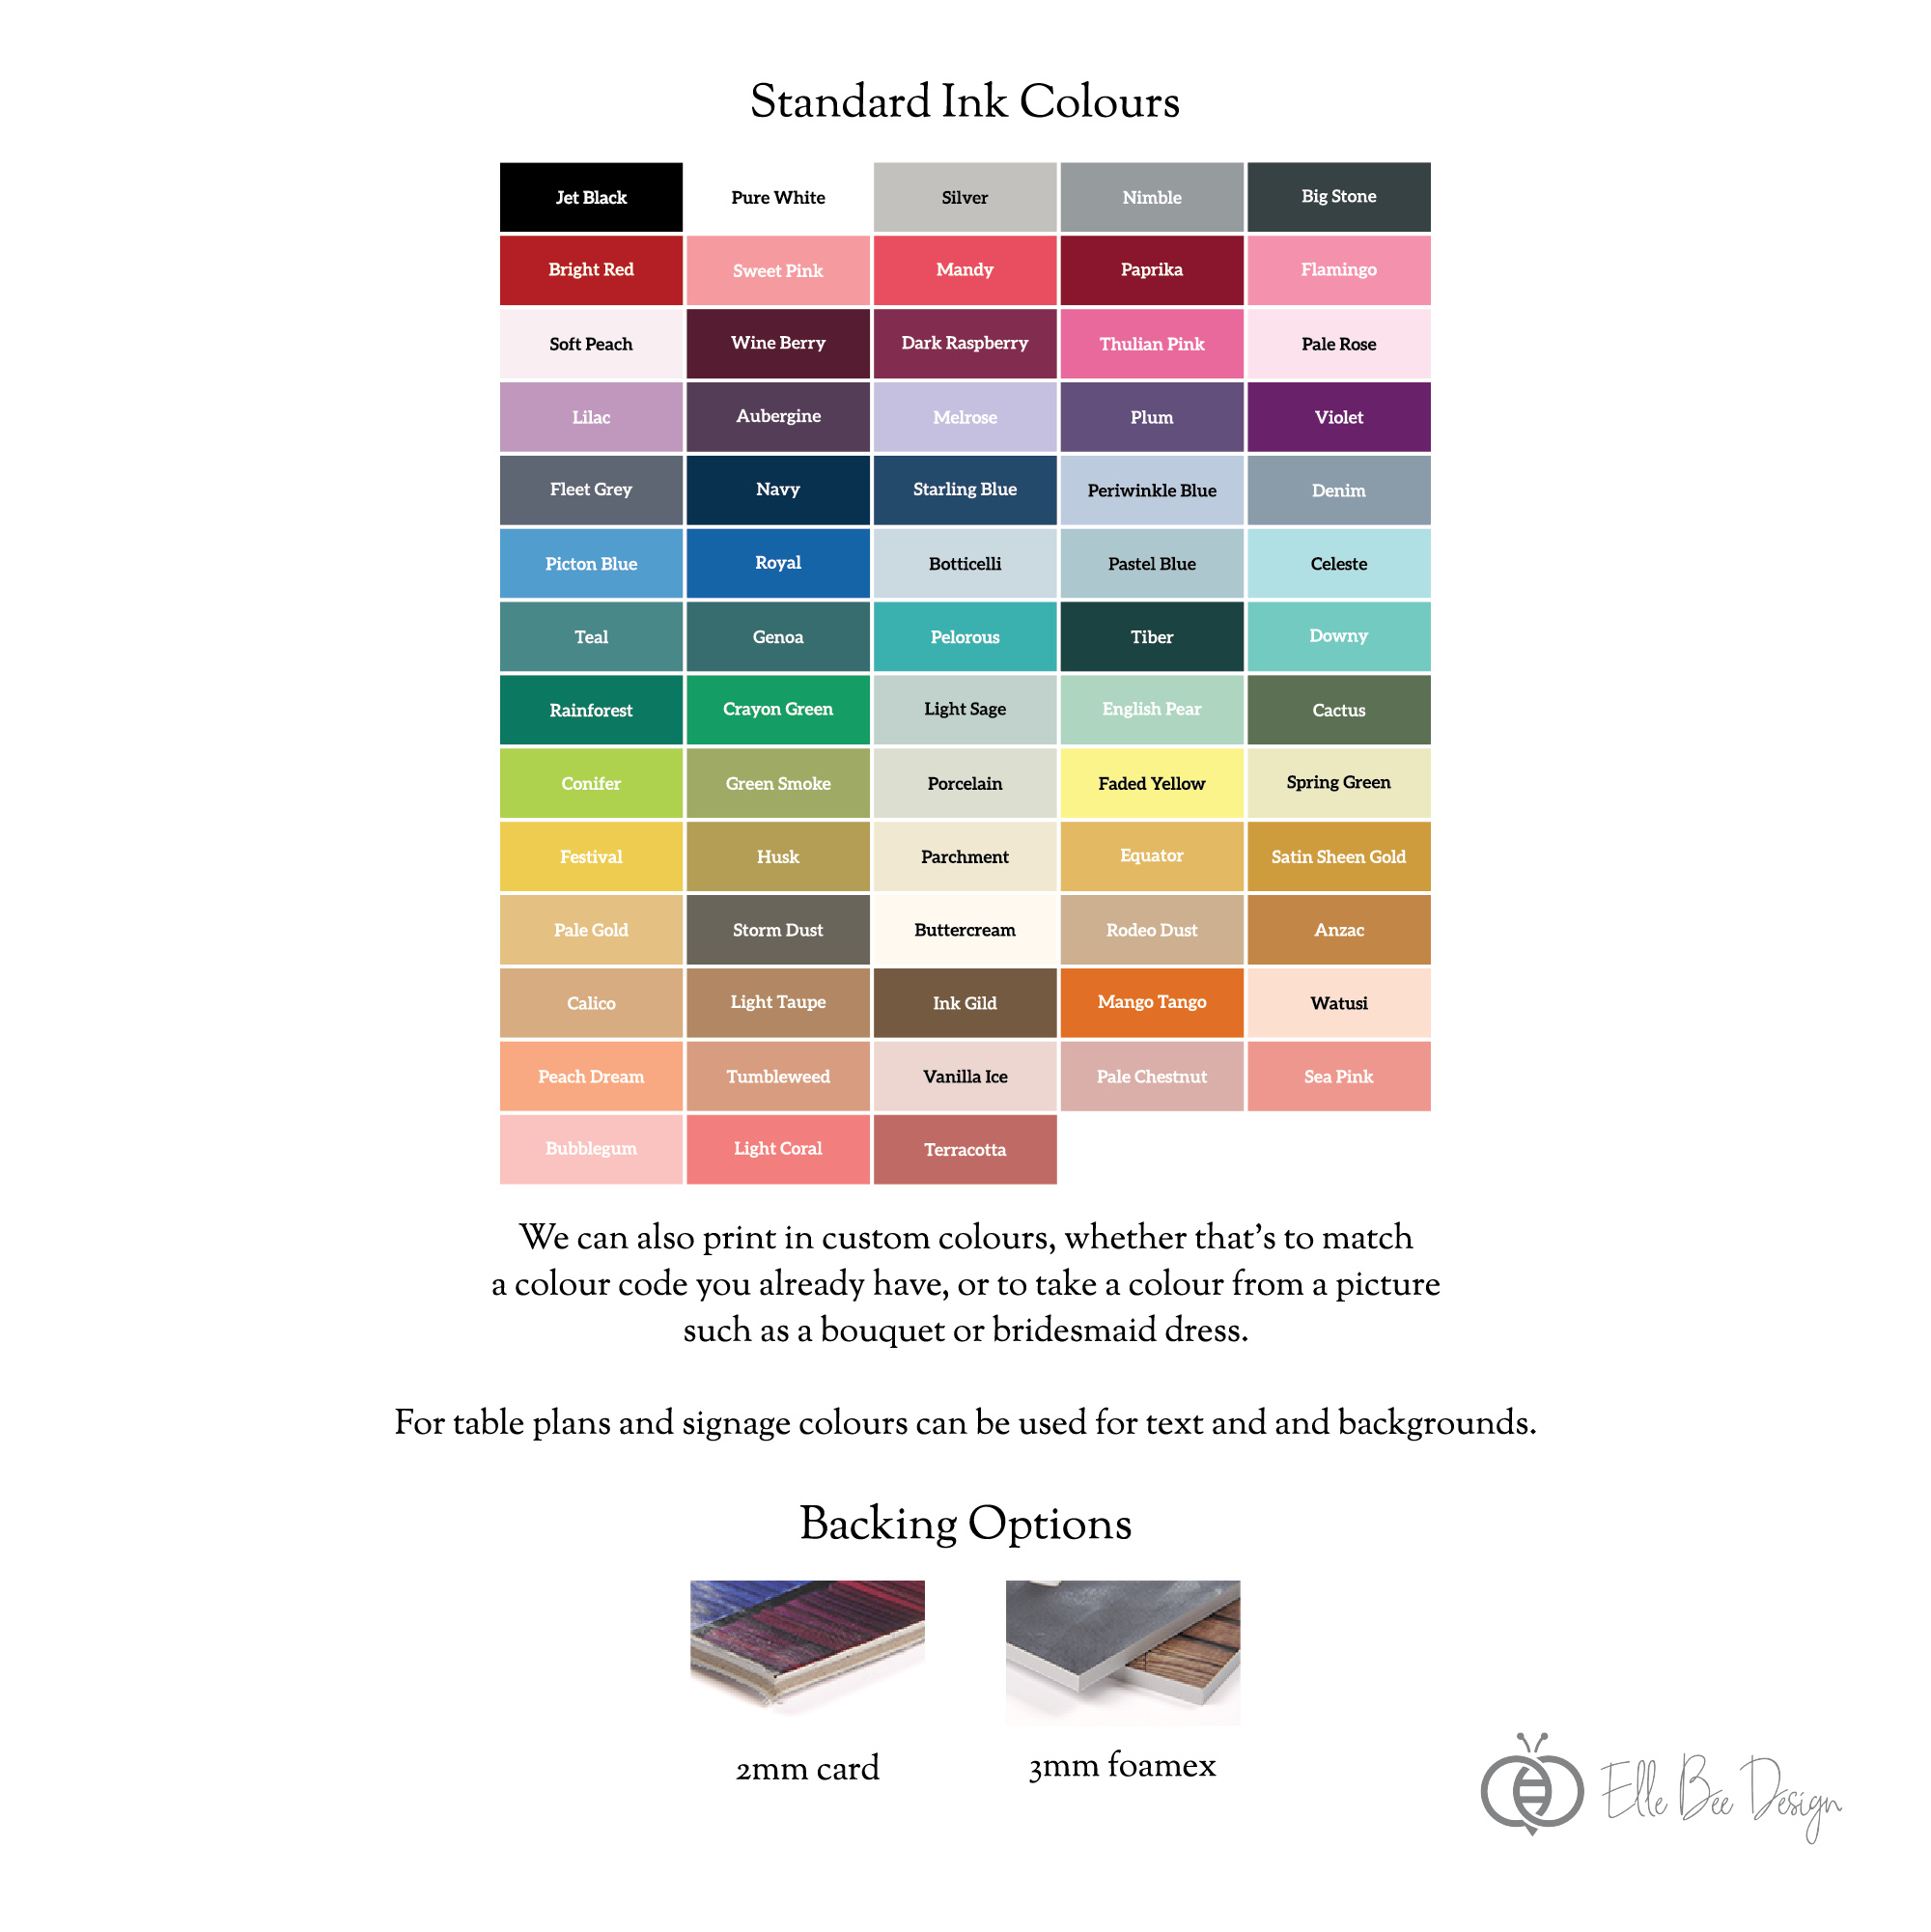 """Details - Our Table Plans are professionally printed on a choice of two substrates. Text, accents, background colours and borders are all colour customisable.- Available in either A2 (420mm x 594mm / 16.5"""" x 23.4"""") or A1 (594mm x 841mm / 23.4"""" x 33.1""""). A0 available upon request.- Discounted bundle available with either or both of a welcome sign and order of the day- Can be printed on 2mm card or 3mm foamex- A2 table plan includes welcome banner, top table and up to 8 tables- A1 table plan includes welcome banner, top table and up to 15 tables- Can be printed with table numbers or custom names- Choice of 60+ colours for printing- One-on-one design with comprehensive digital proofing process- Easel not supplied"""